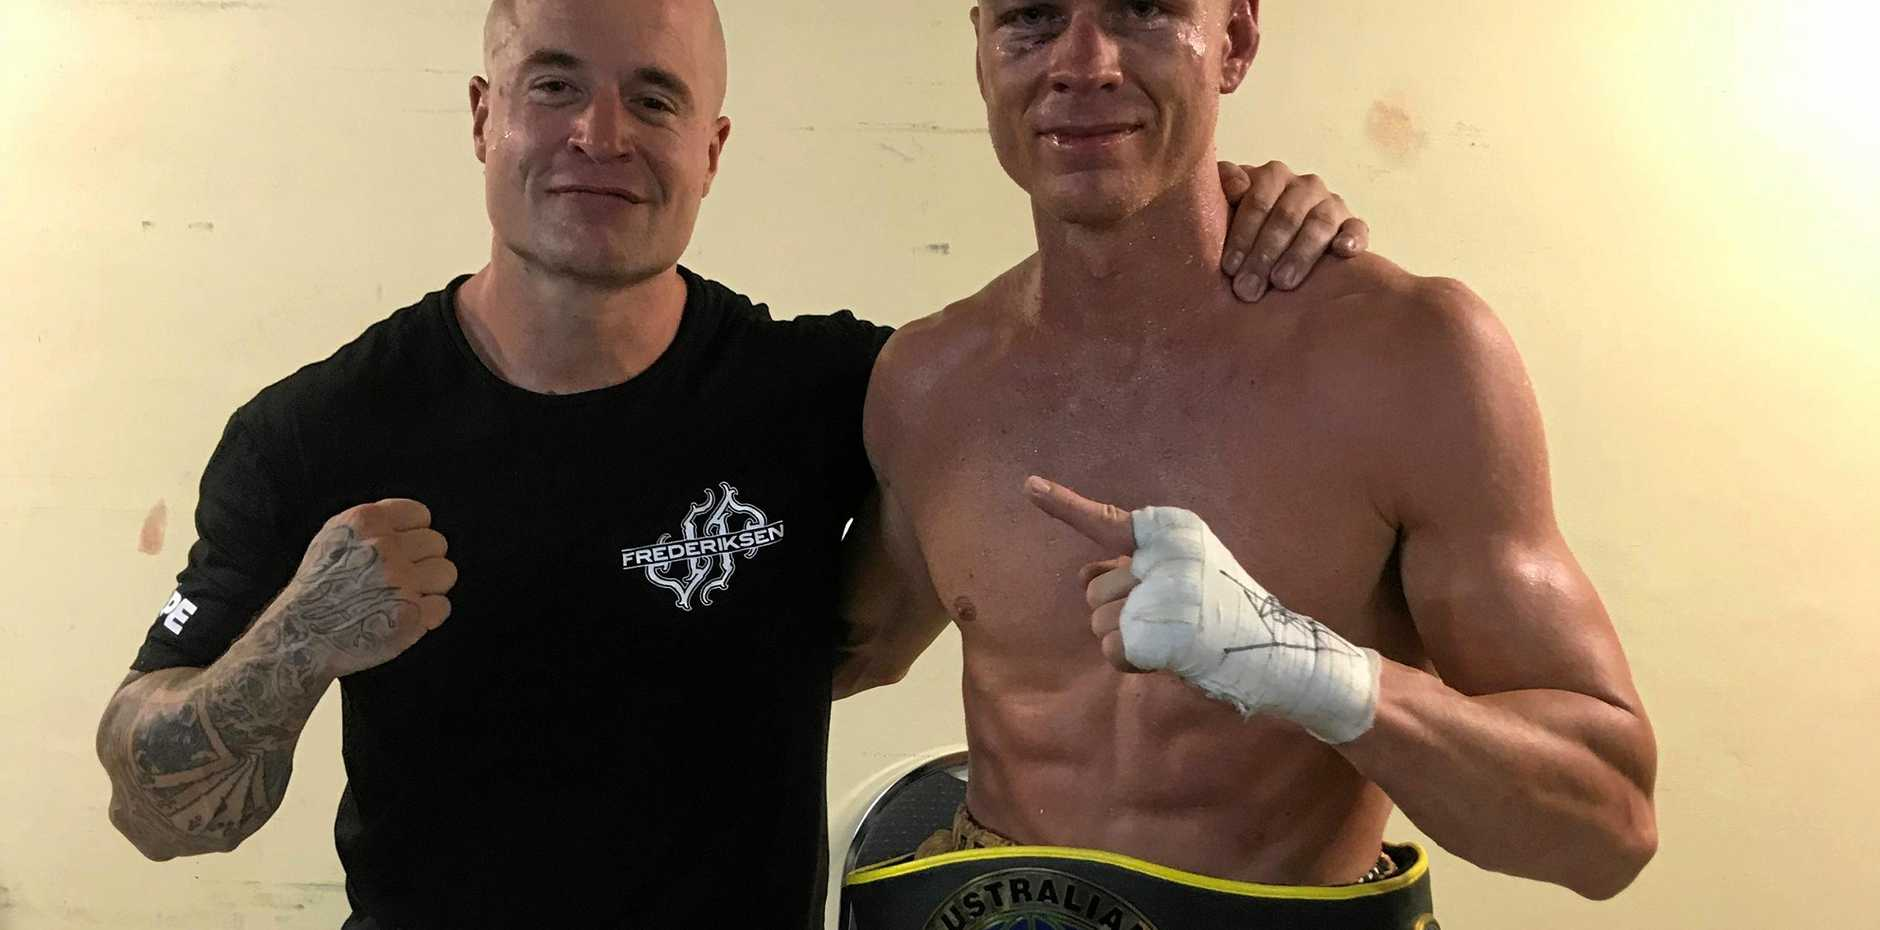 BOXING: Kingscliff Boxing Stables coach Nick Midgley with Kingscliff boxer Josh Frederiksen.